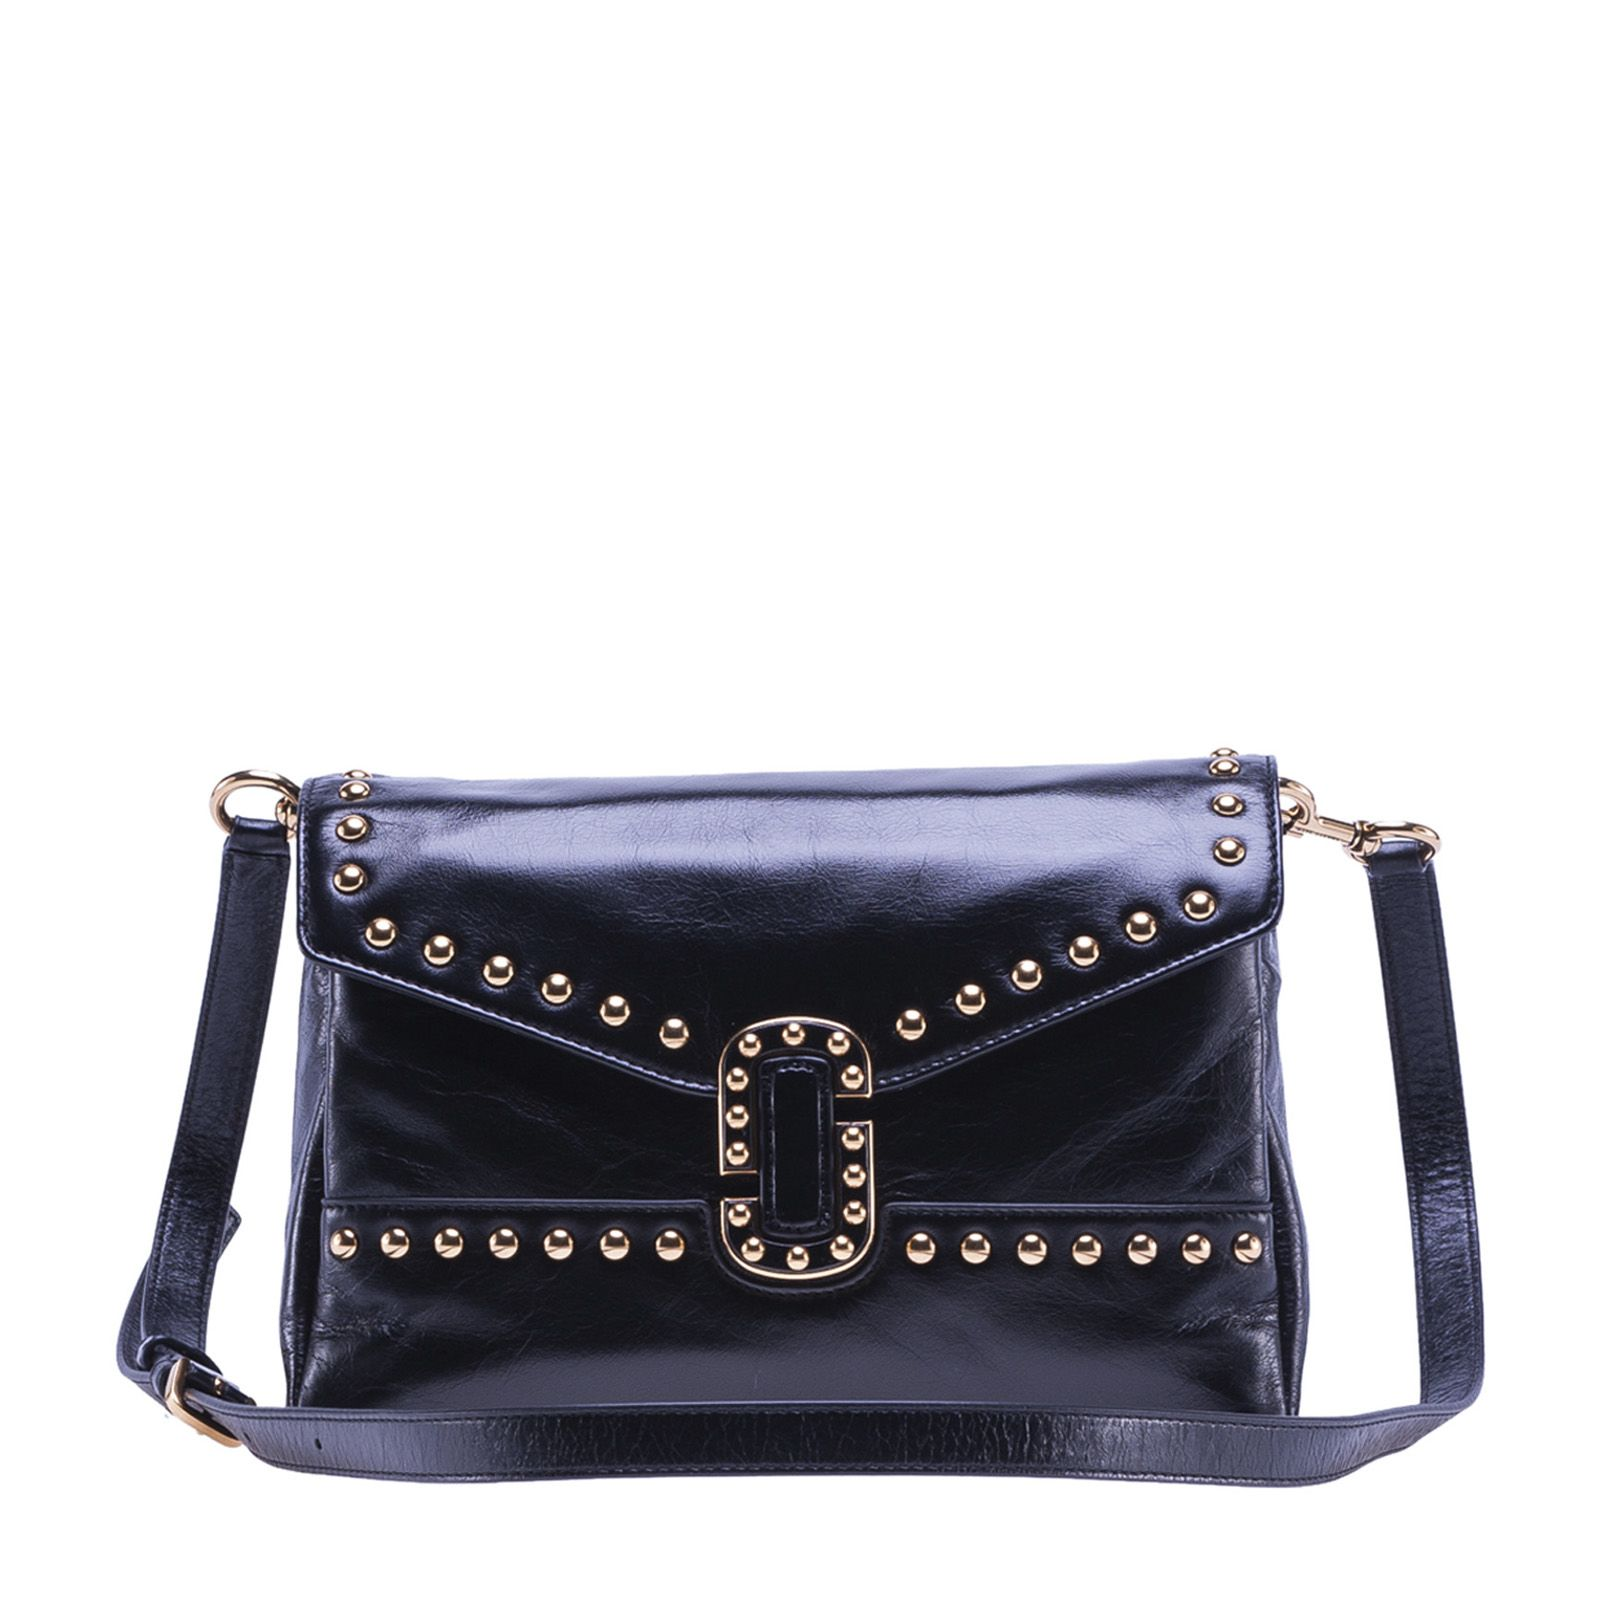 Marc Jacobs Small Studded Envelope Bag